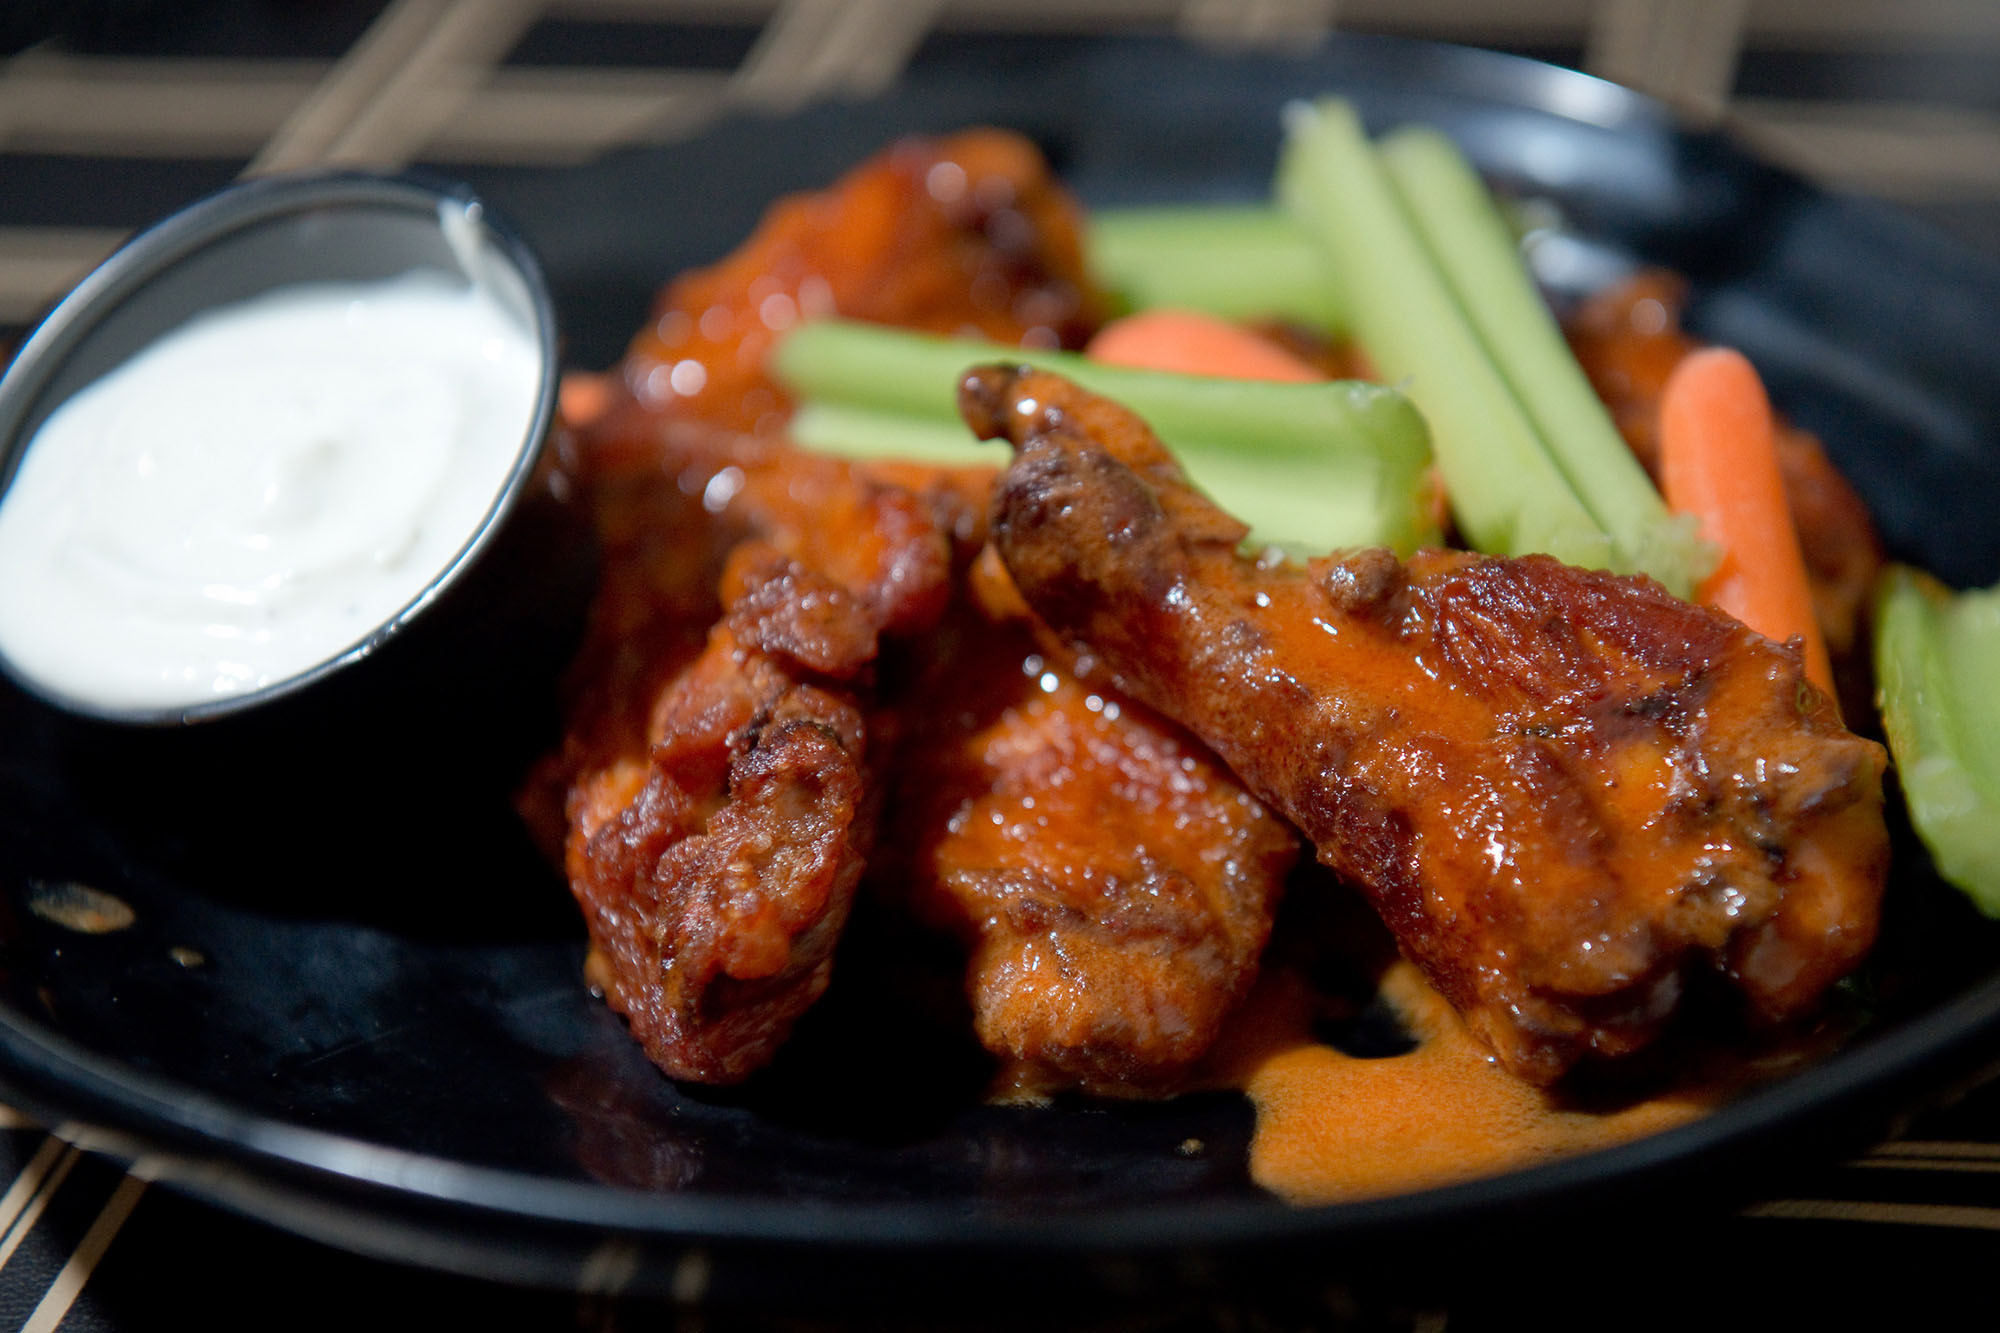 J timothys wings featured on food networks top 5 ct now forumfinder Image collections